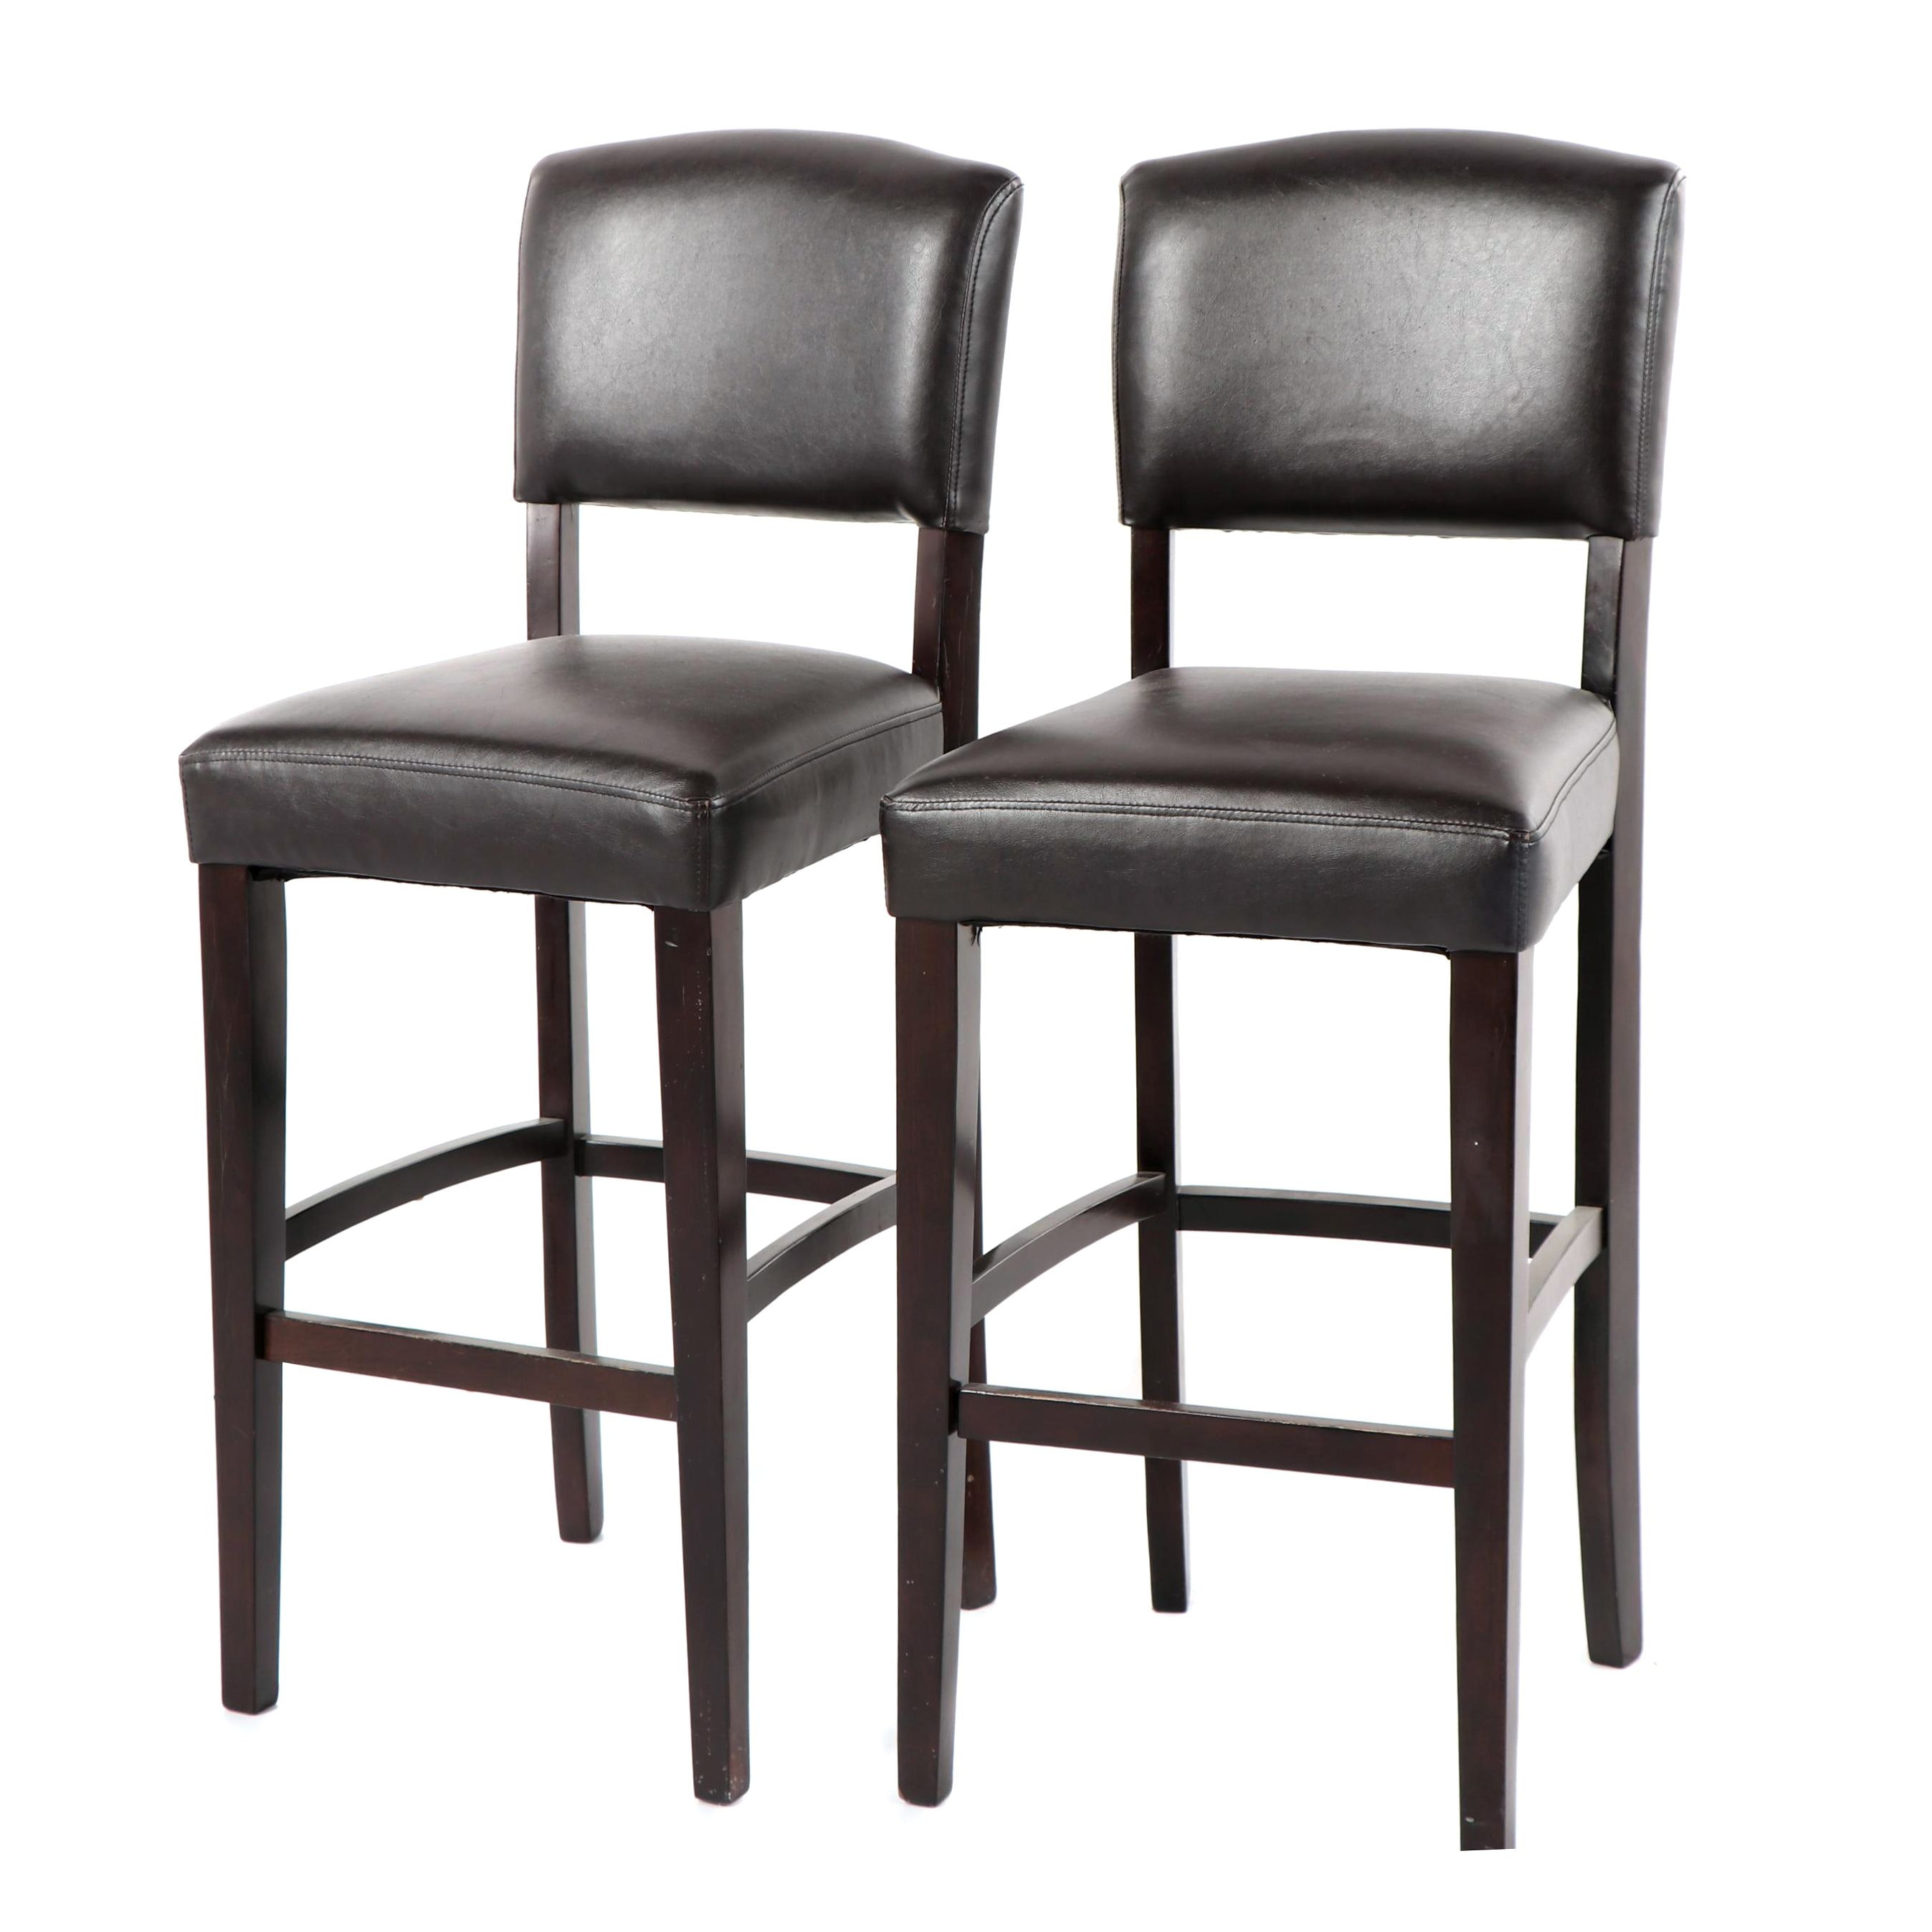 Faux Leather Barstools by Bed Bath & Beyond